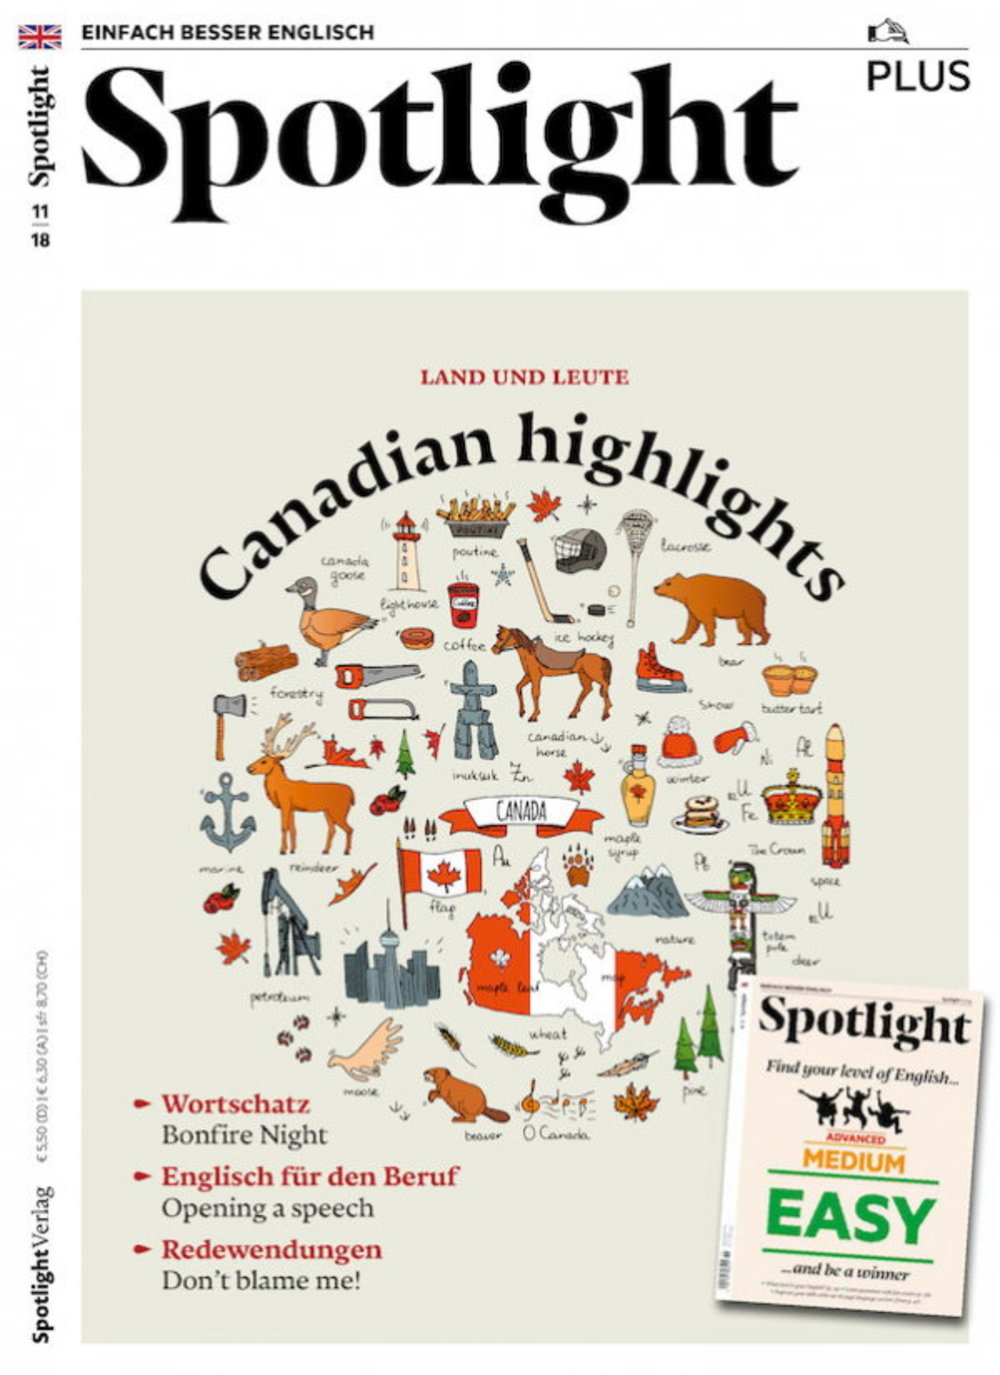 Spotlight PLUS 11/2018